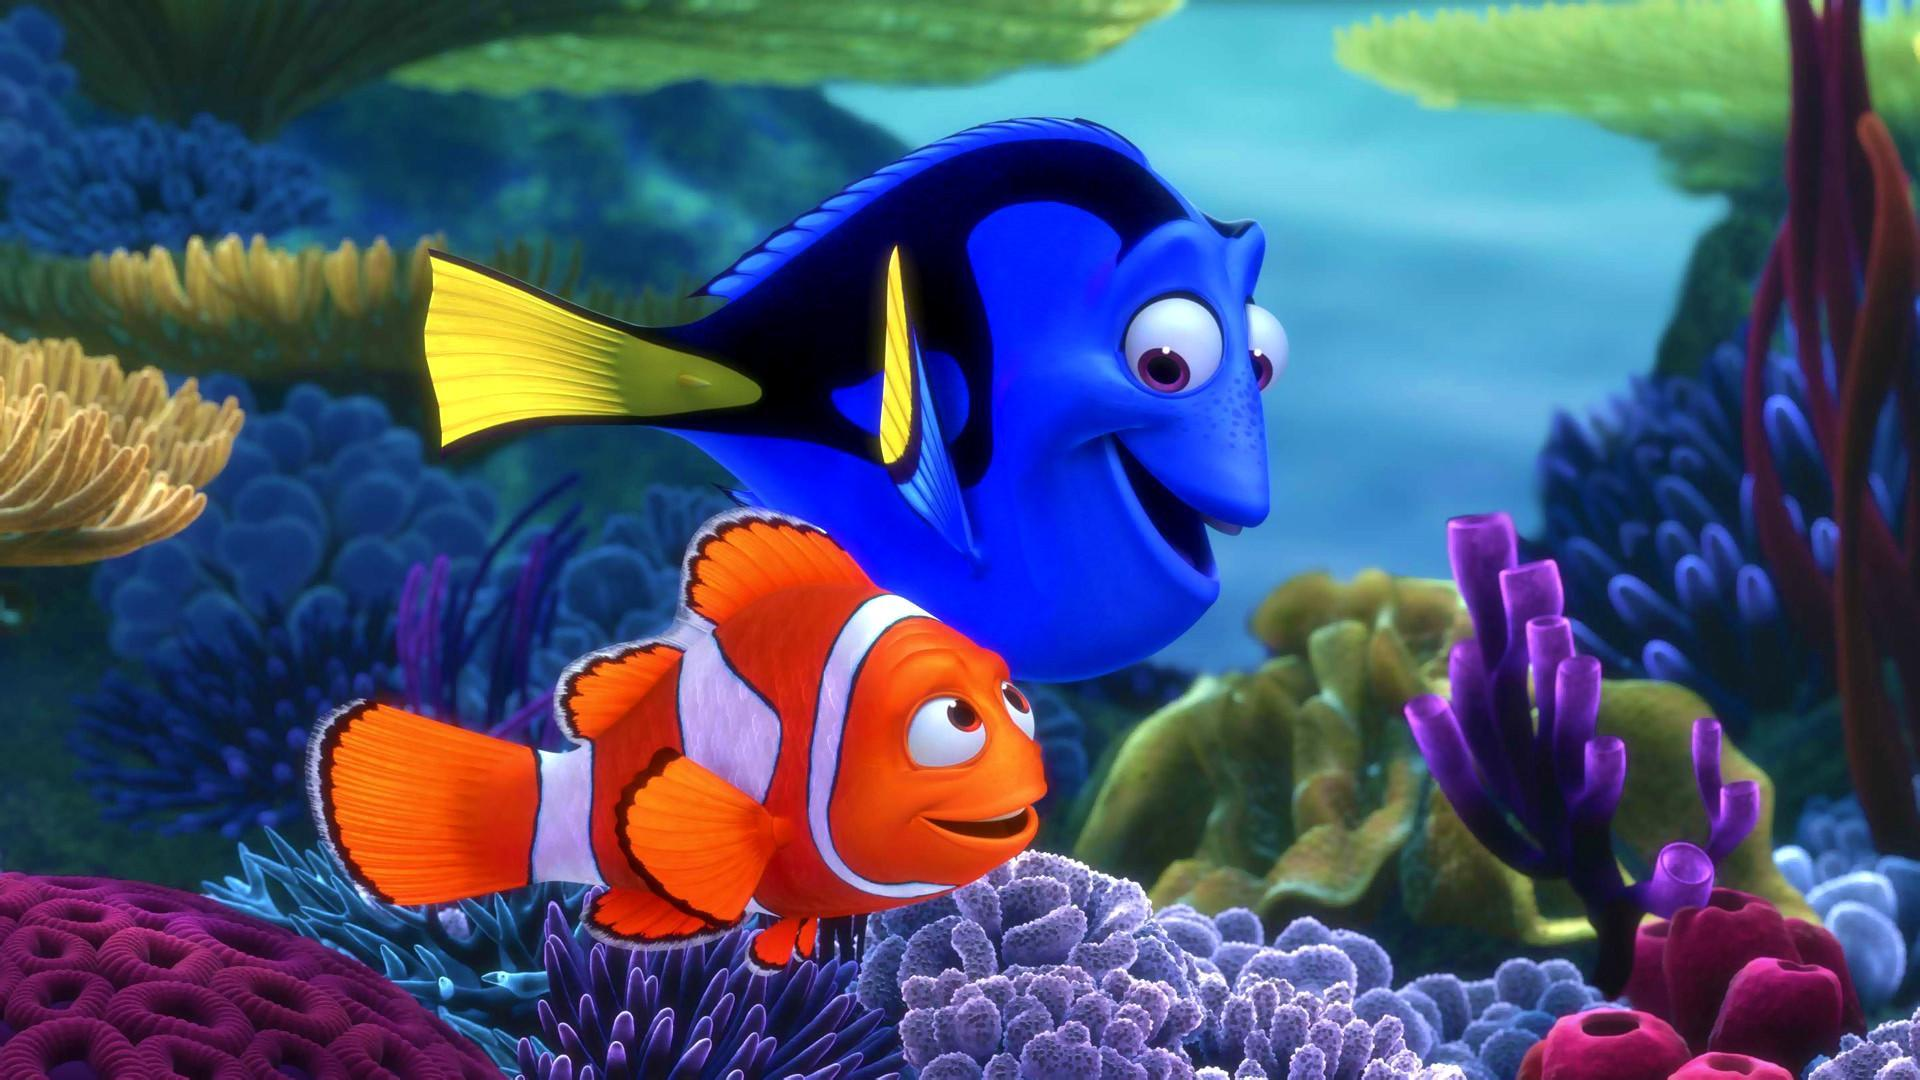 Which movie do you like more: Finding Nemo or Finding Dory?